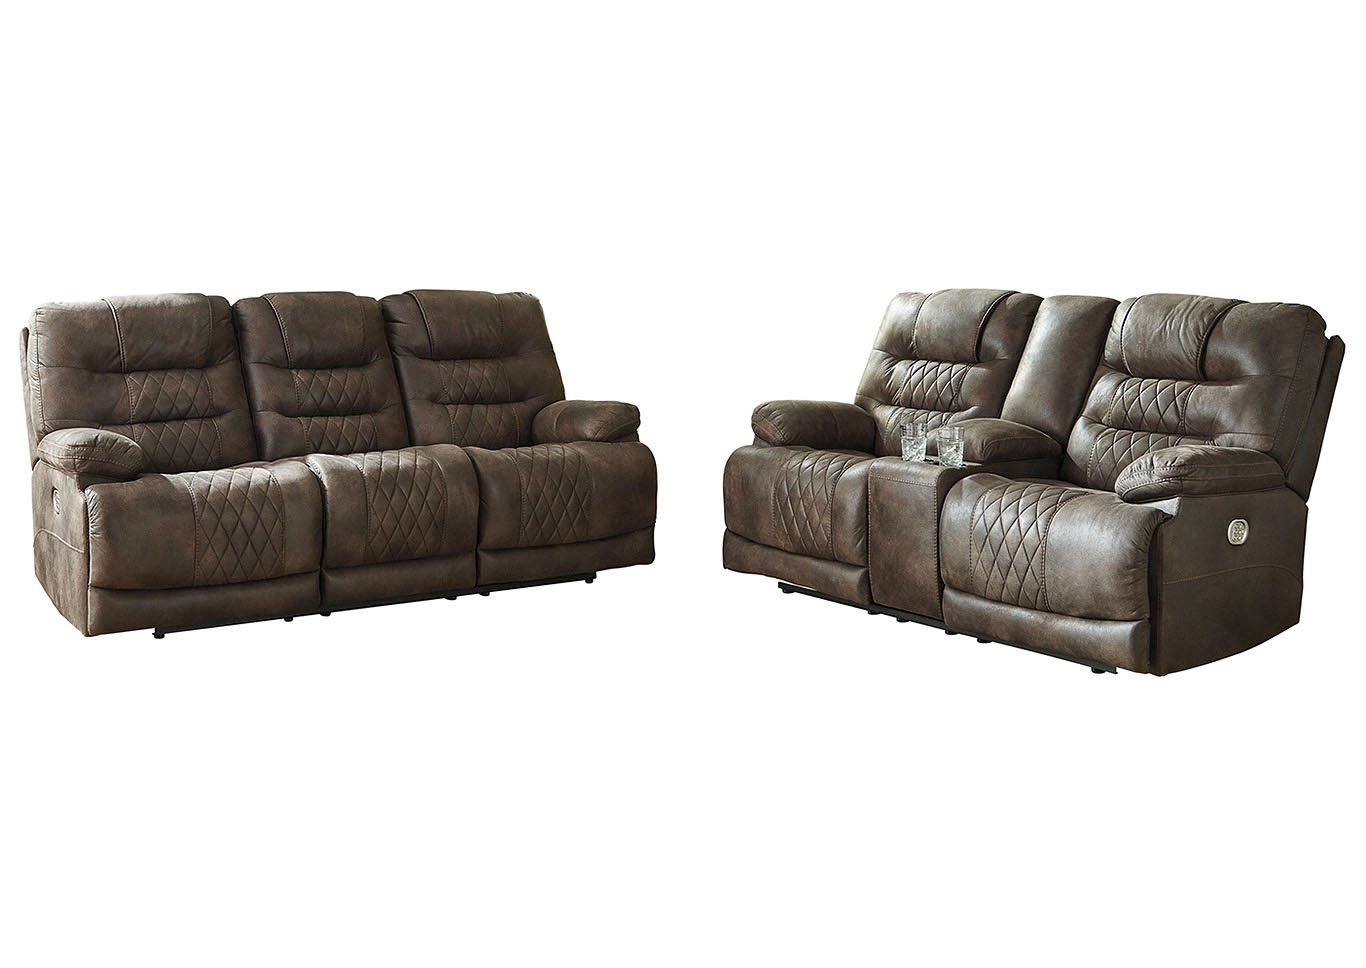 Welsford Walnut Power Reclining Sofa & Loveseat w/Adjustable Headrest,Signature Design By Ashley